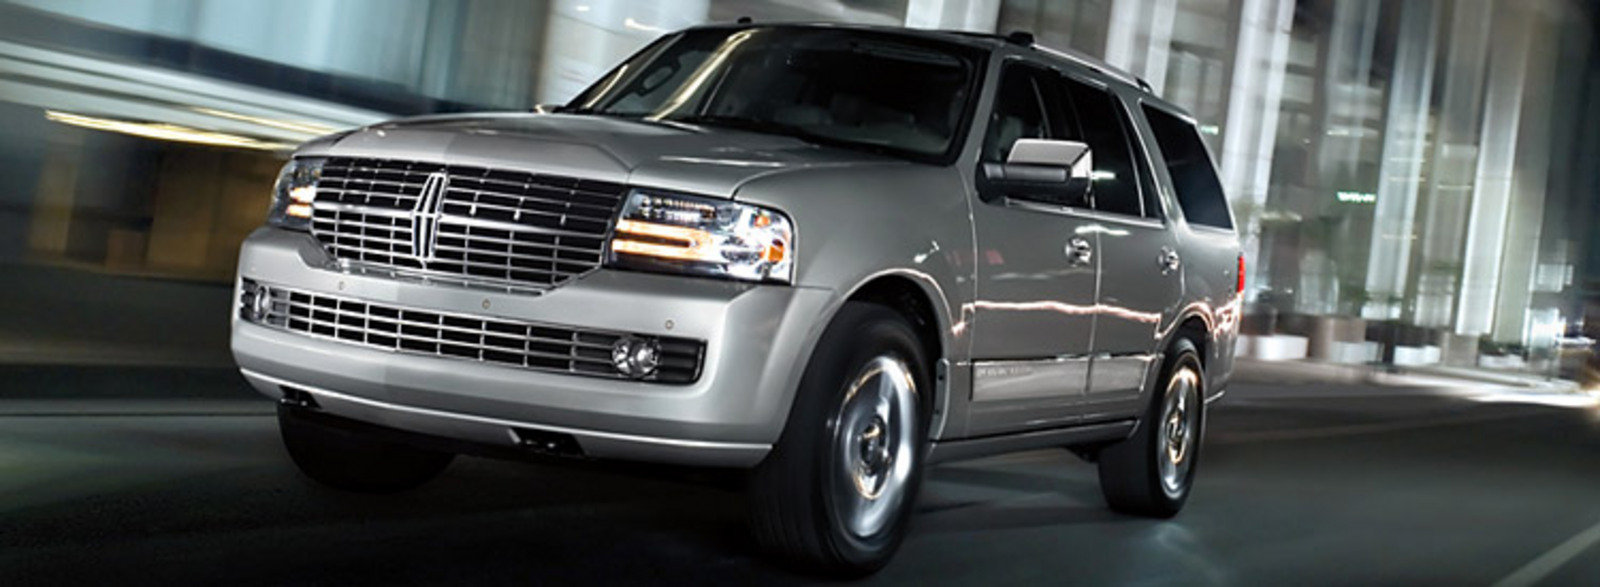 2010 Lincoln Navigator Review Top Speed